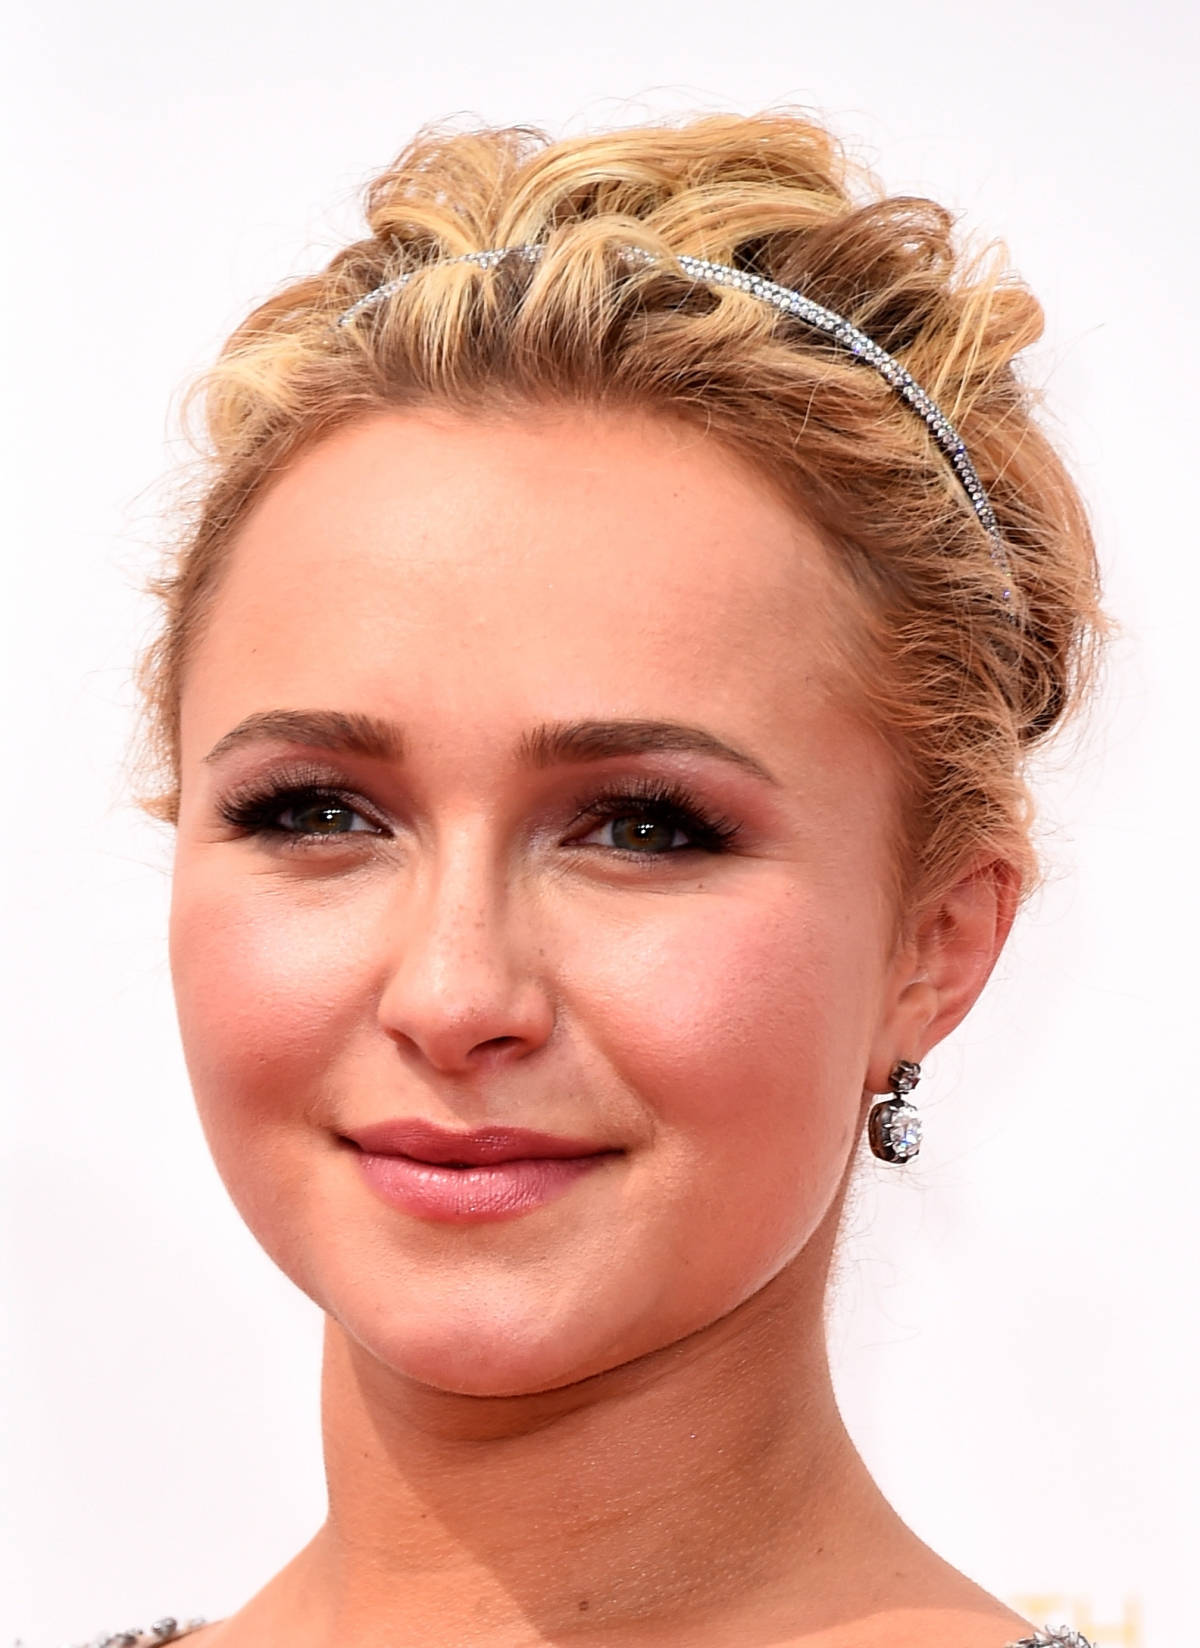 Hayden Panettiere naked (74 foto), pics Tits, YouTube, butt 2016